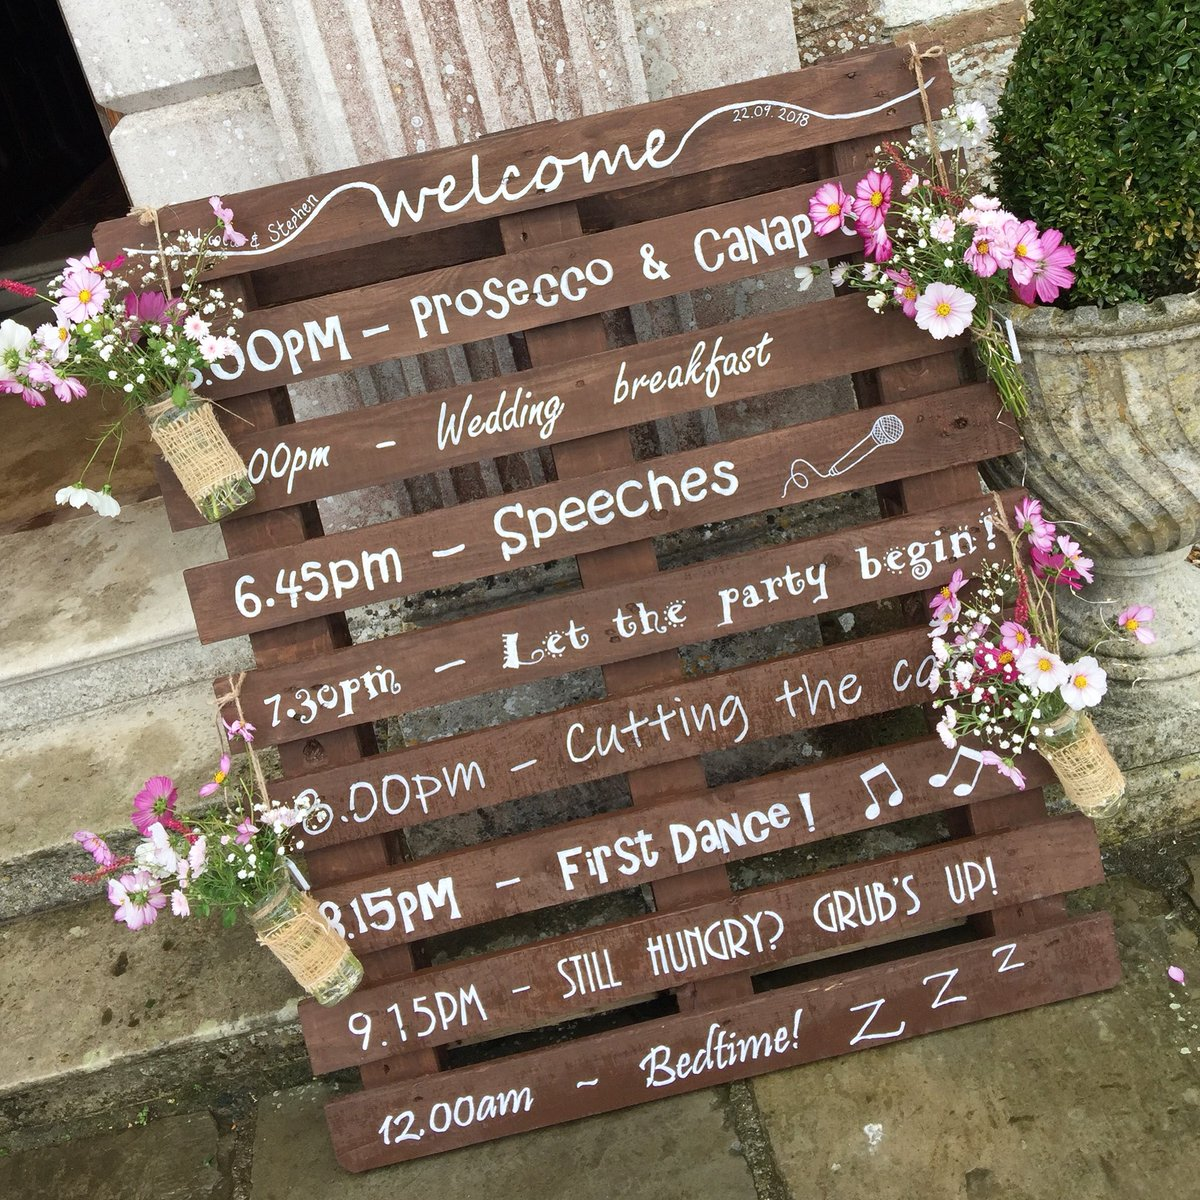 What's on! A great way to let your guests know the order of the day @Loseleyevents #weddings #weddingideas #weddinginspiration #gettingmarried #weddingday #surreywedding